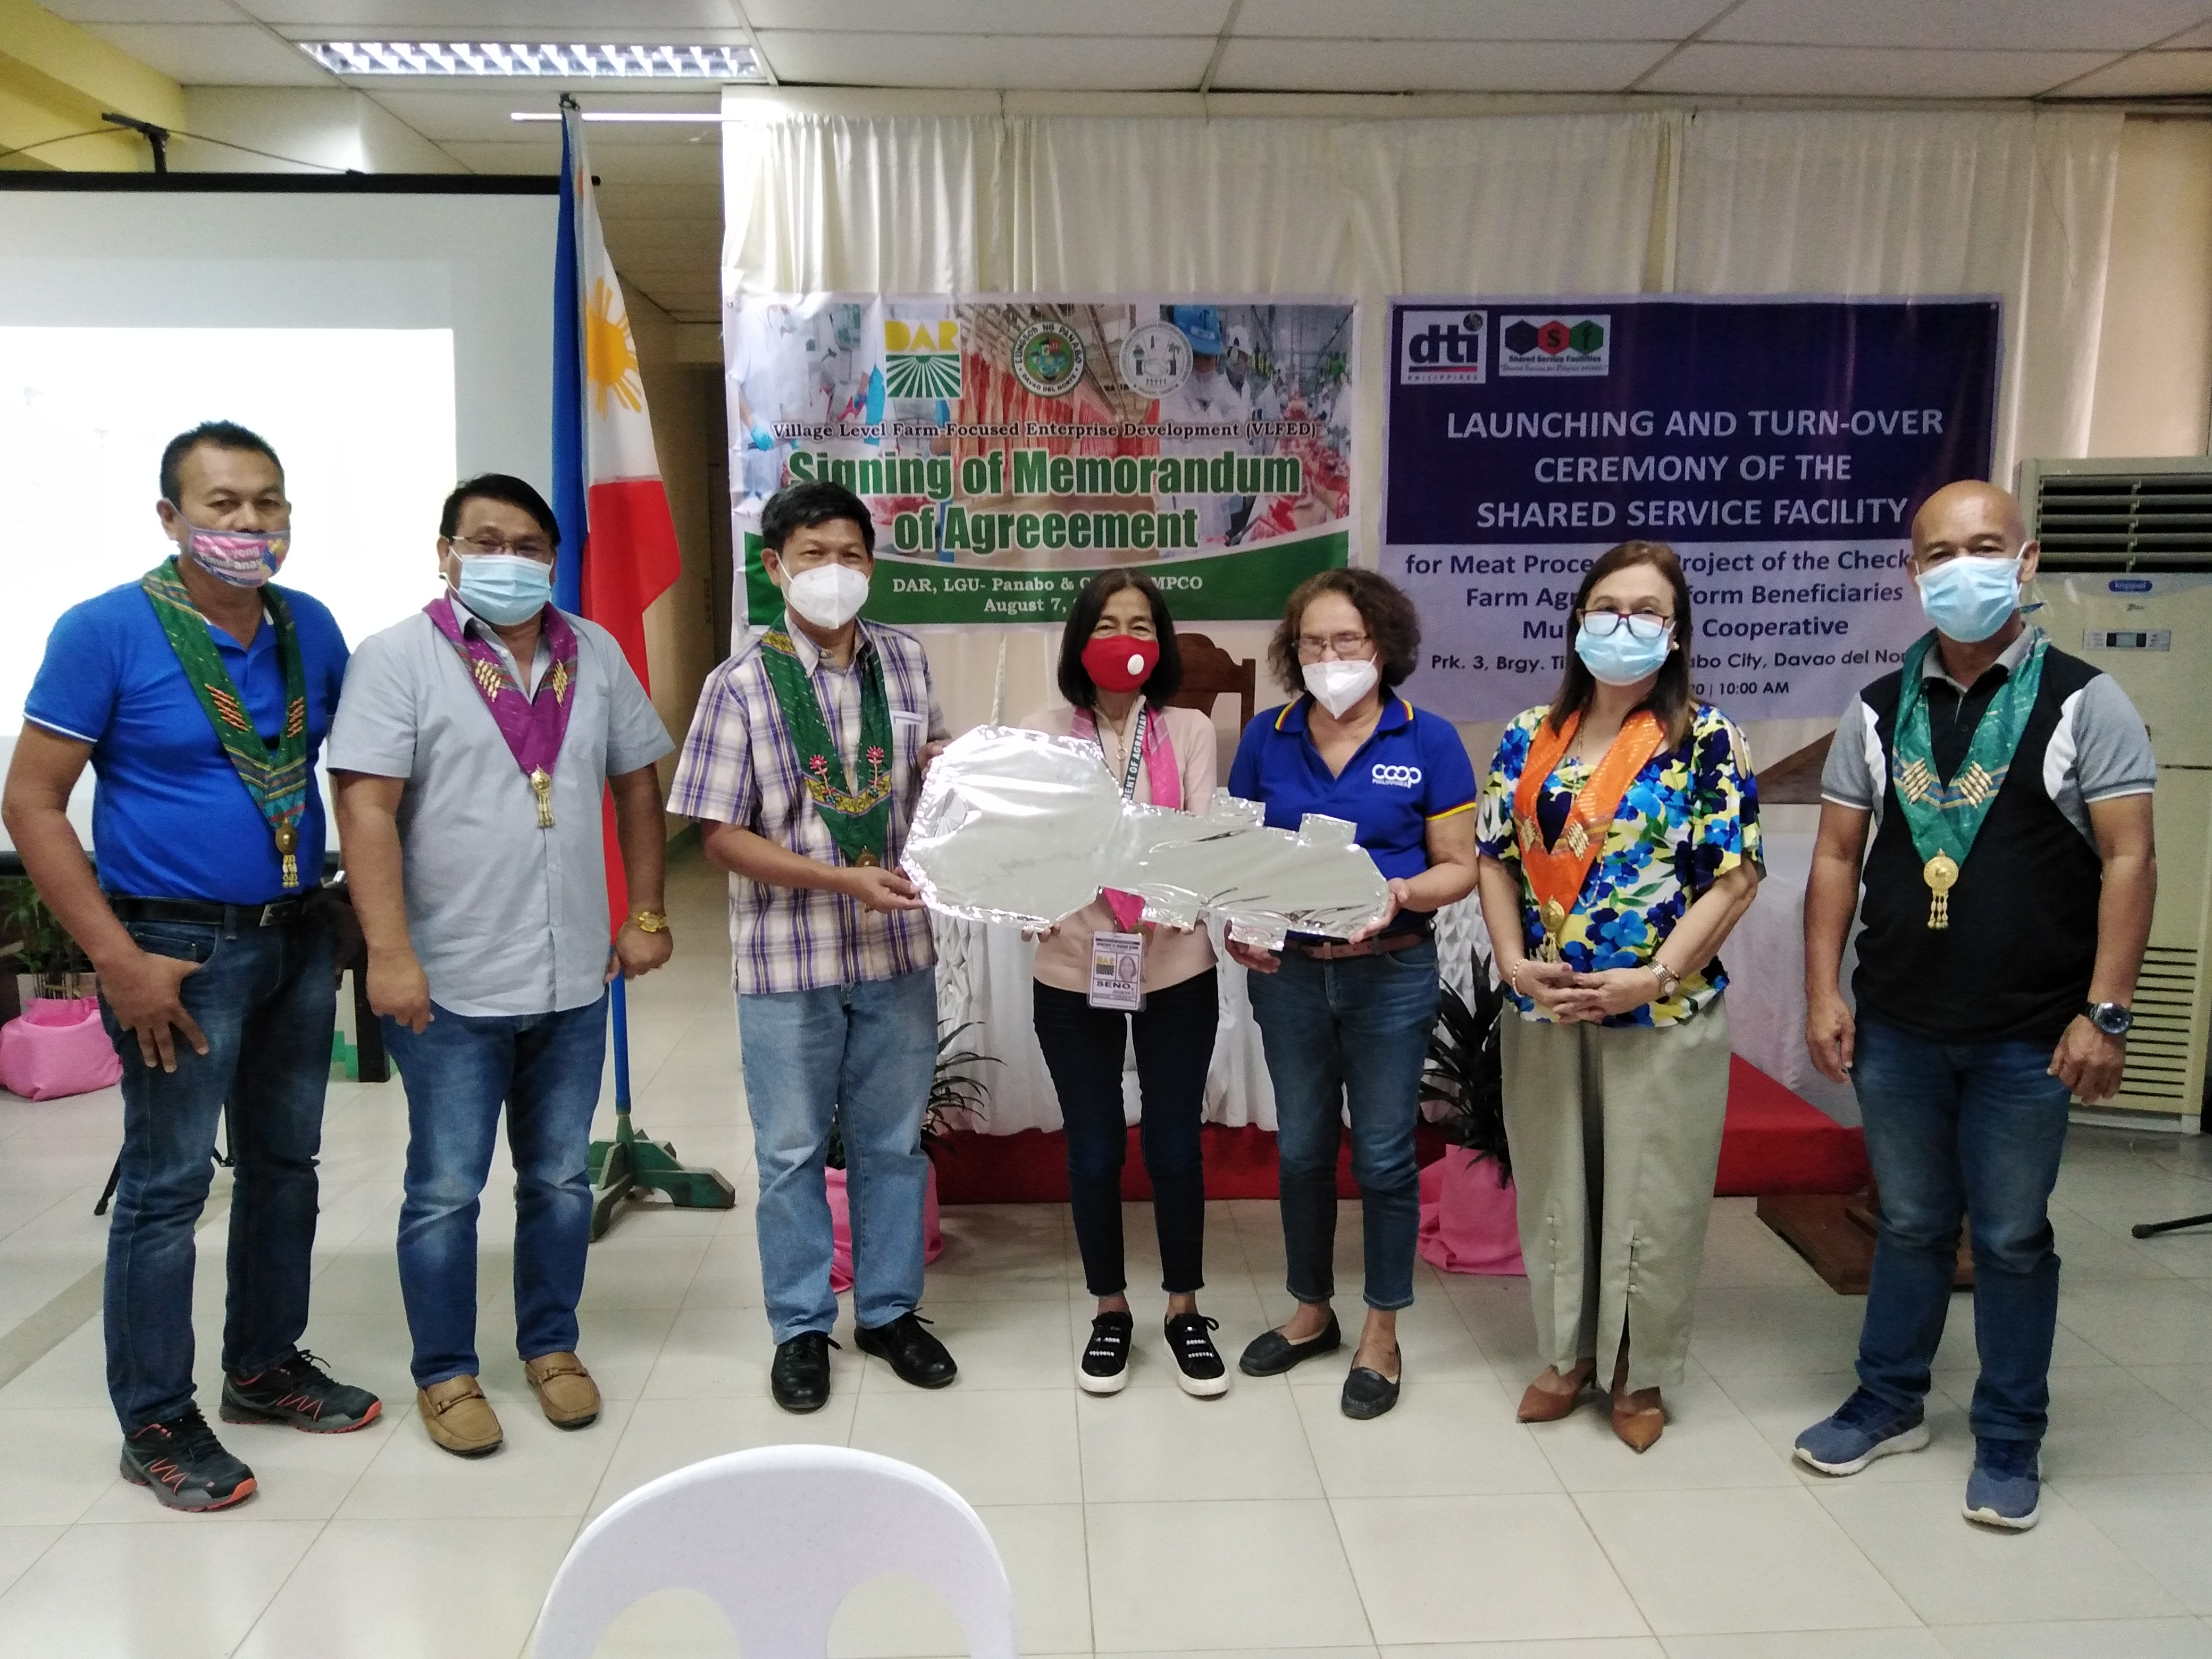 The ceremonial turn-over of key of responsibility of the P 1 Million worth of Meat Processing Plant in CFARBEMPCO, Panabo City. From left  Tibungol, Panabo City Brgy. Captain Fernando Candol, Panabo City Mayor Jose Relampagos, DTI Provincial Director Romeo Castanaga, PARPO Jocelyn Seno, CFARBEMCO Chairperson Eleuteria Chacon, DTI Asst. Regional Director Marie Ann How and City Councilor Emeterio Blase